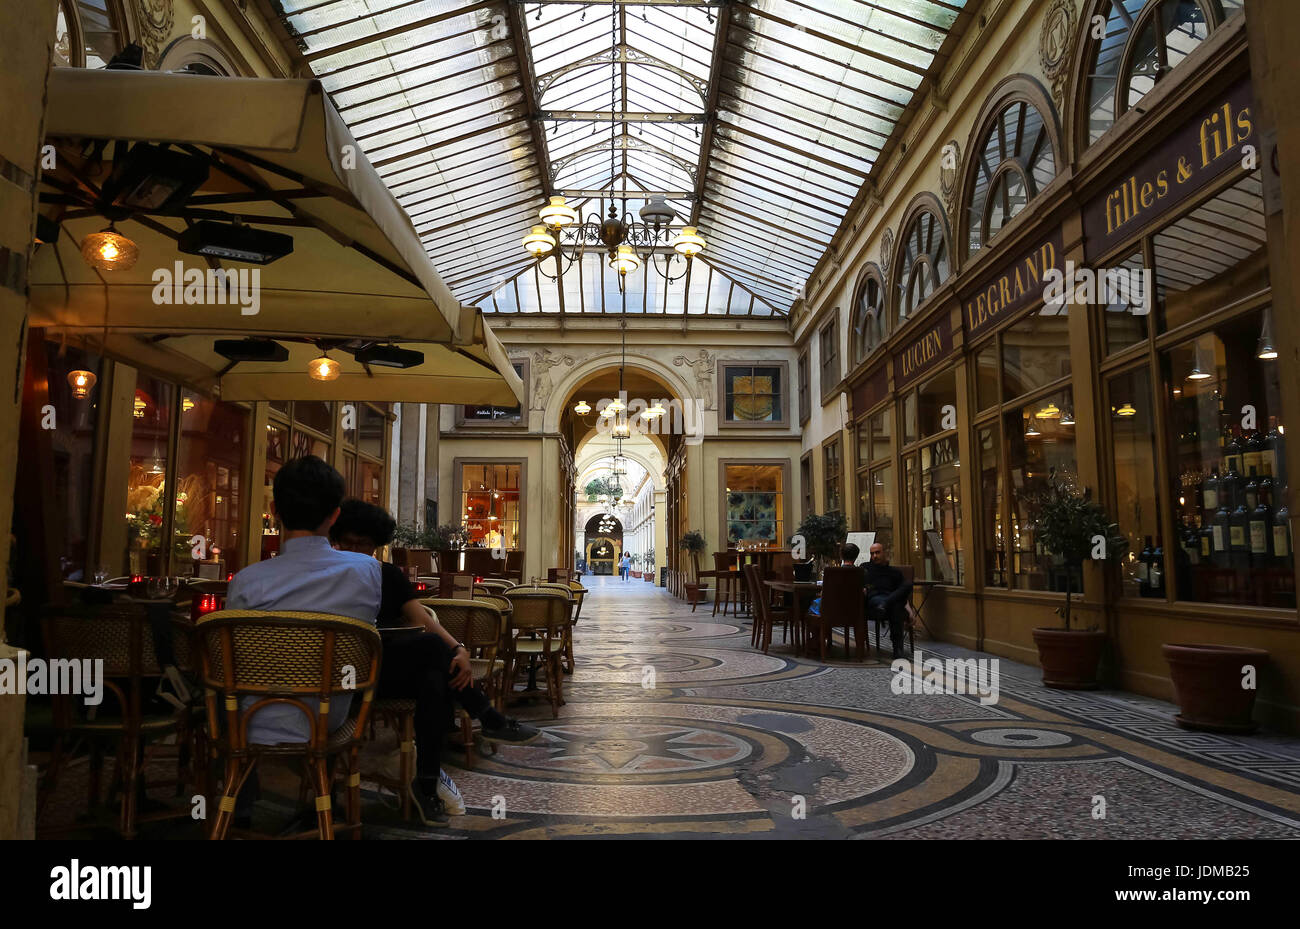 the galerie vivienne is a historical passage in paris france stock